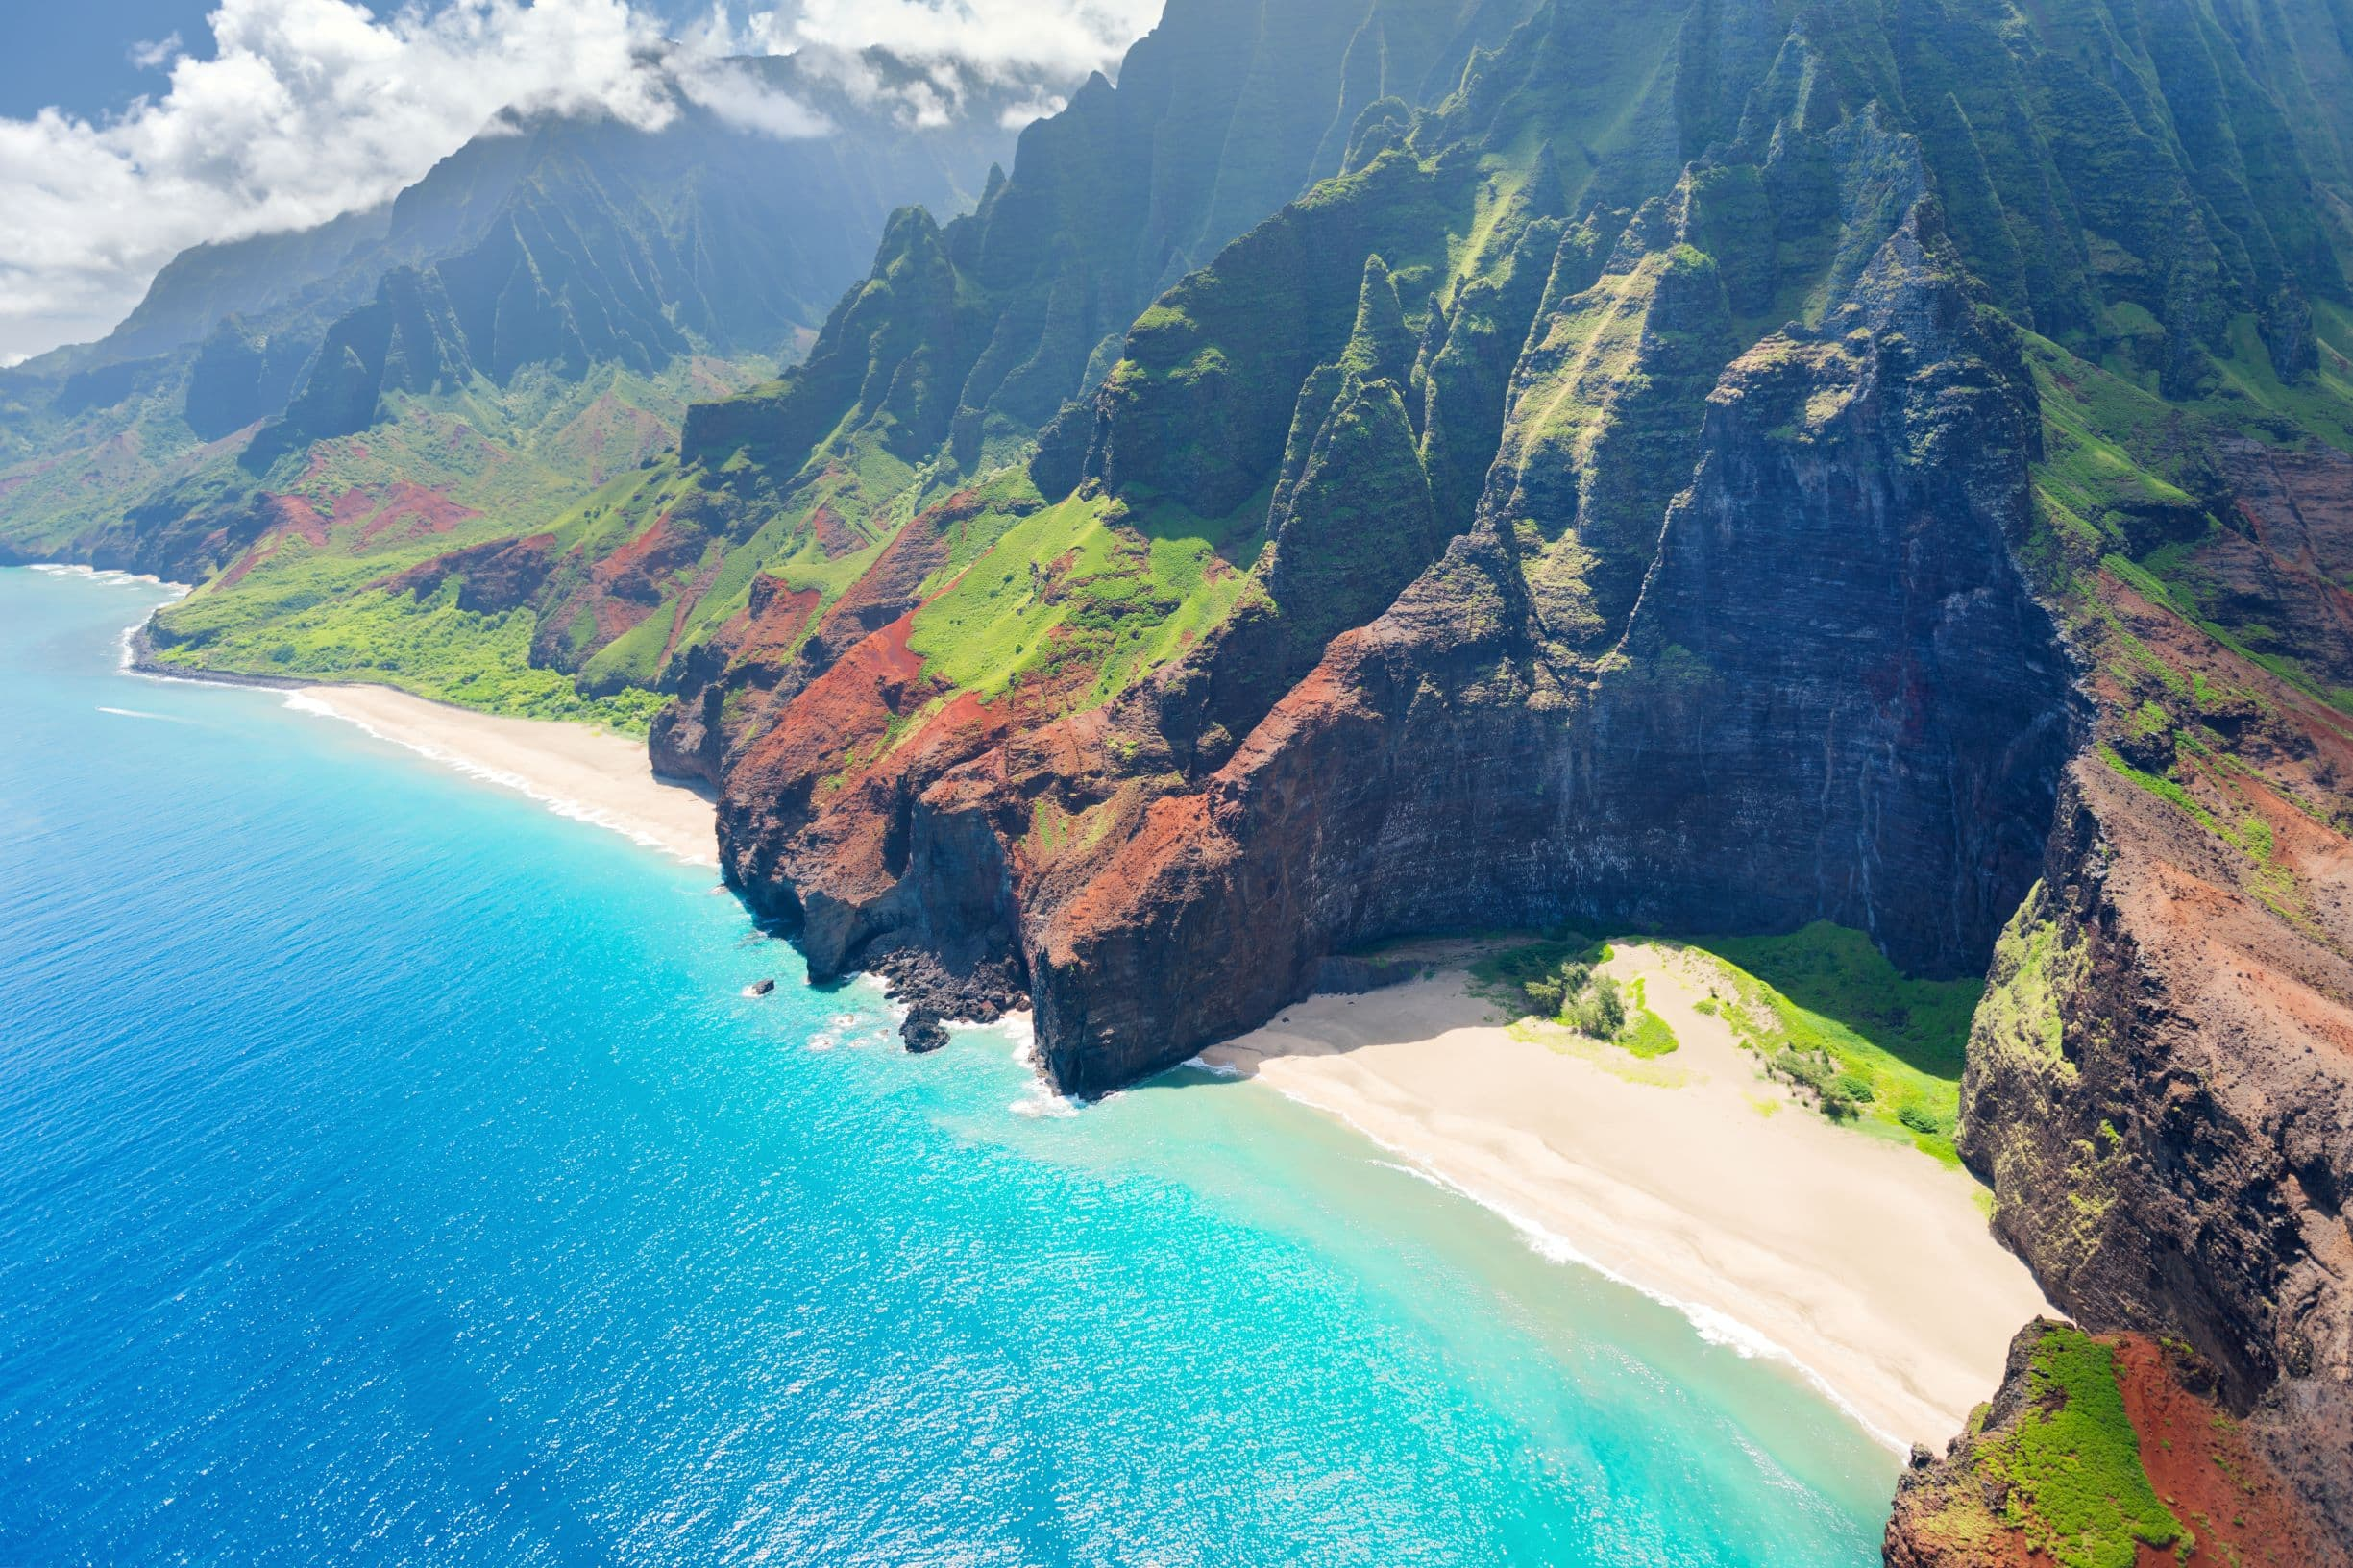 Na Pali cliffs coastline, Kauai, Hawaii